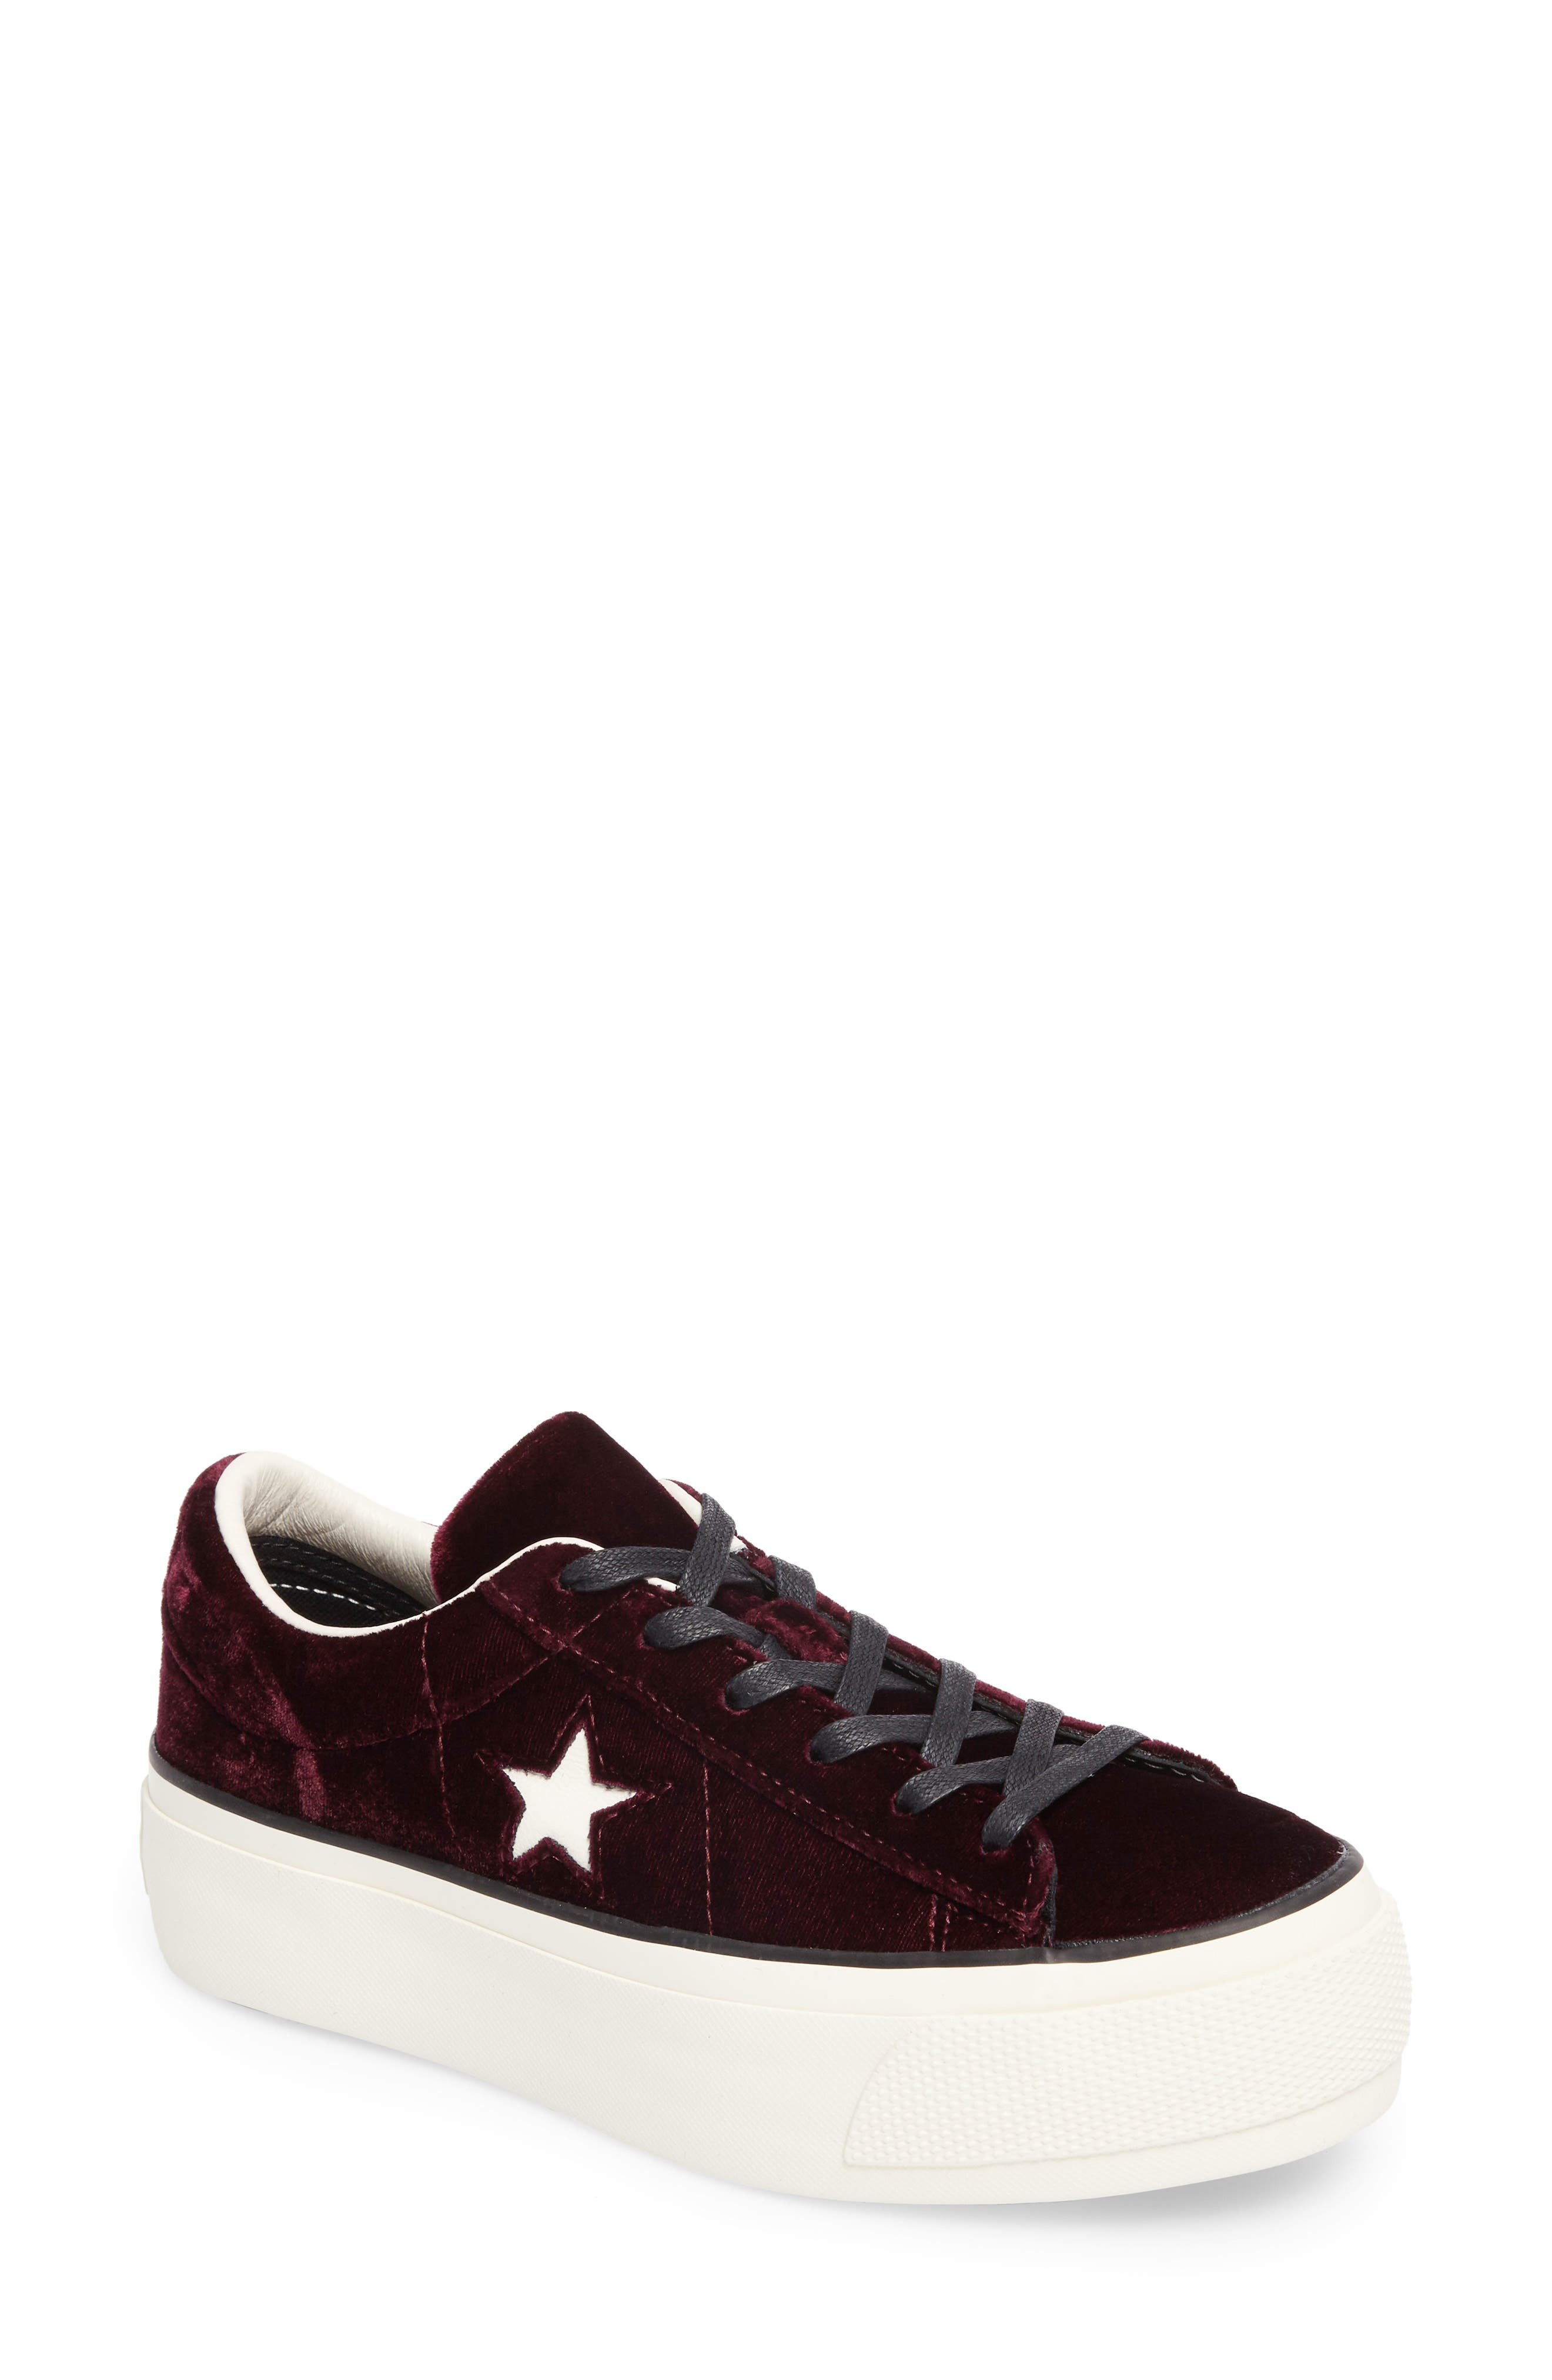 Alternate Image 1 Selected - Converse Chuck Taylor® One Star Platform Sneaker (Women)